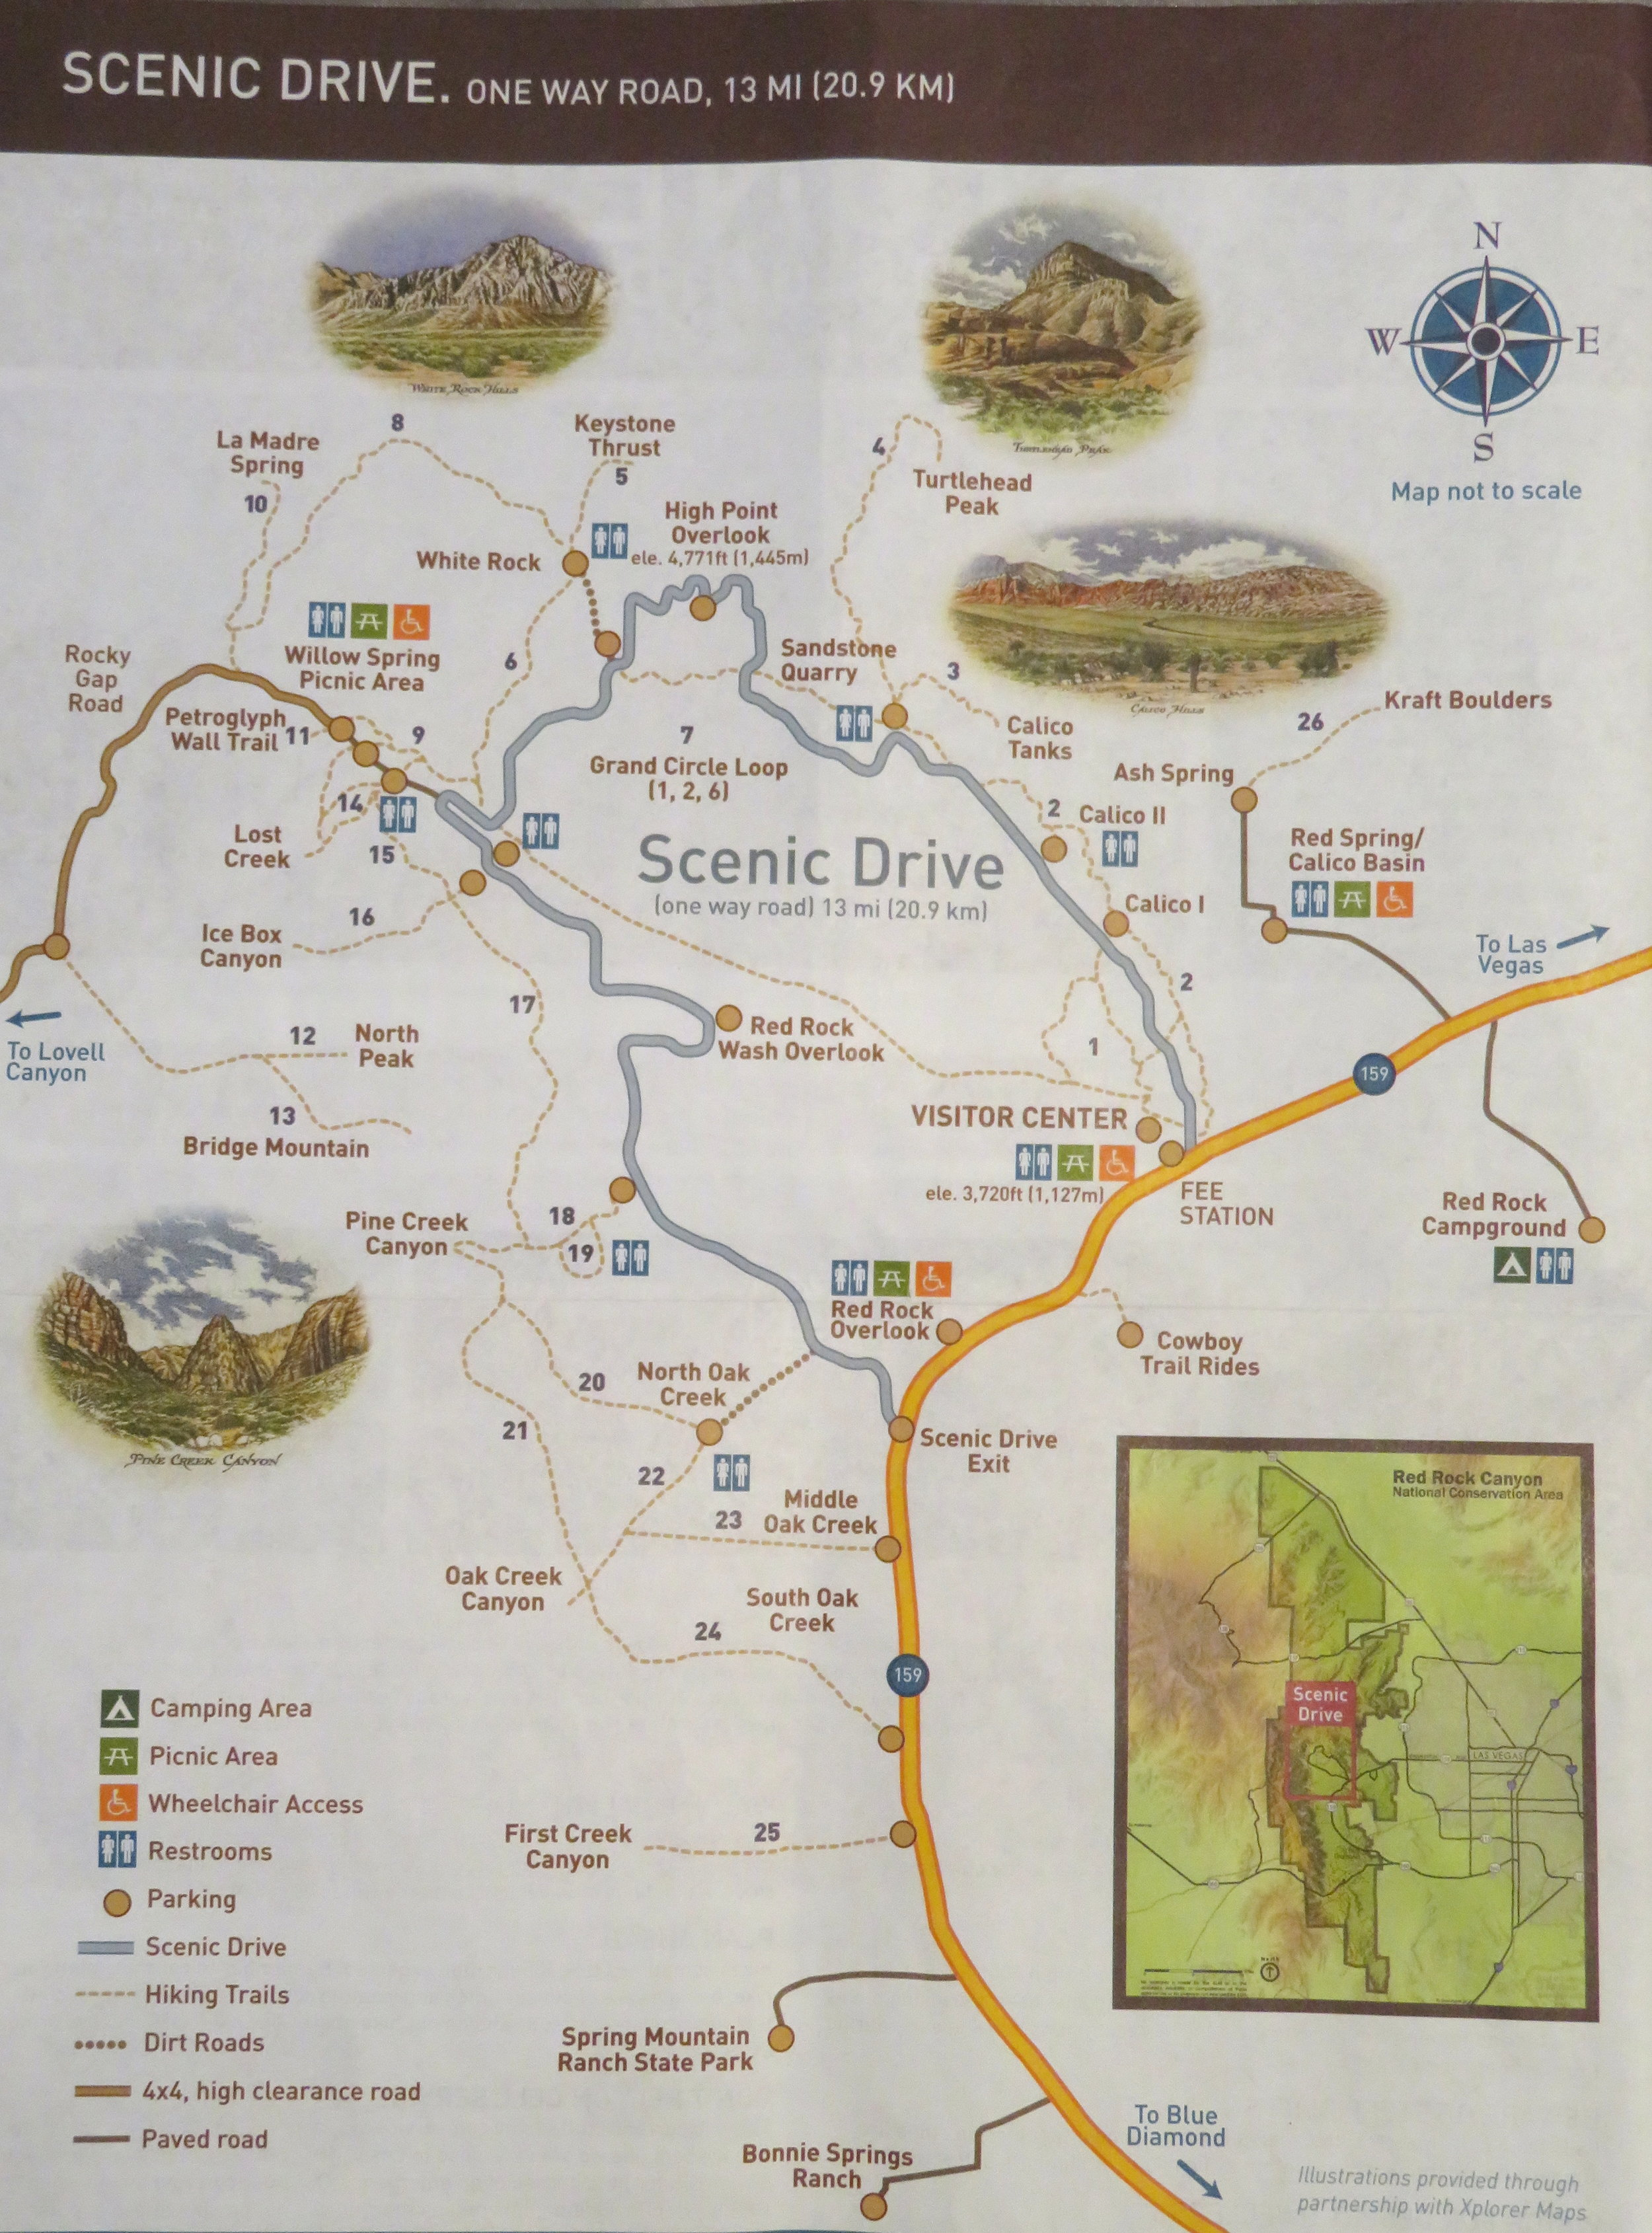 The park map showed lots of hiking opps for easy, moderate and difficult levels.